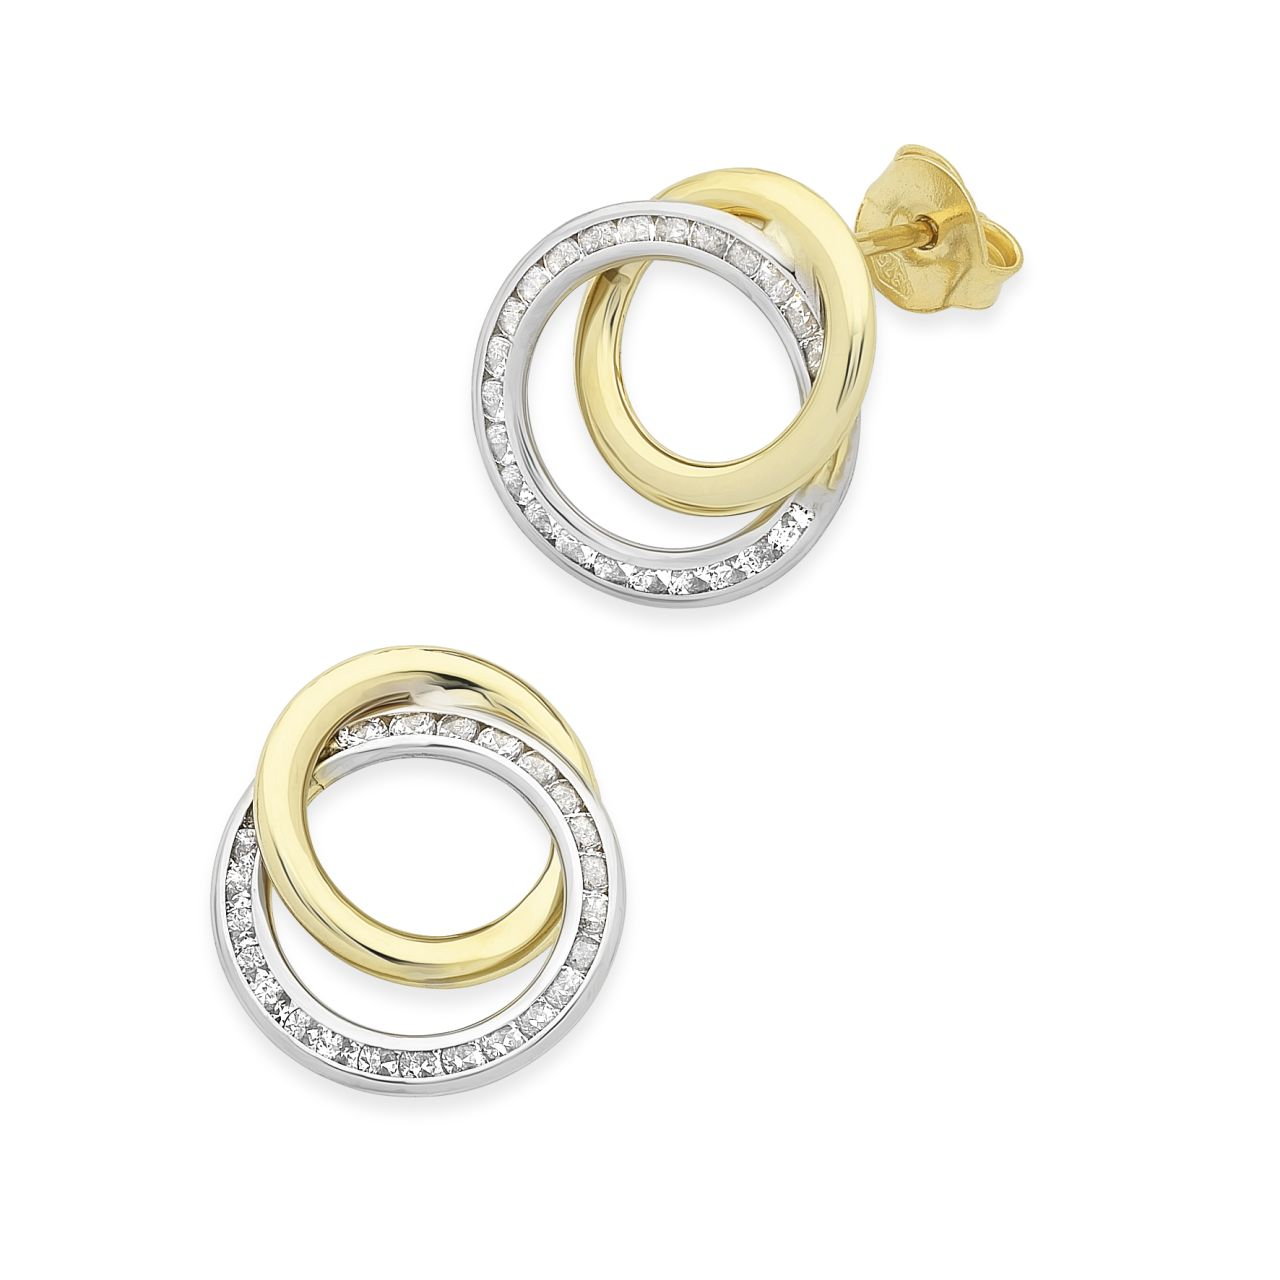 9ct Gold 2-Tone Cubic Zirconia Double Ring Earrings